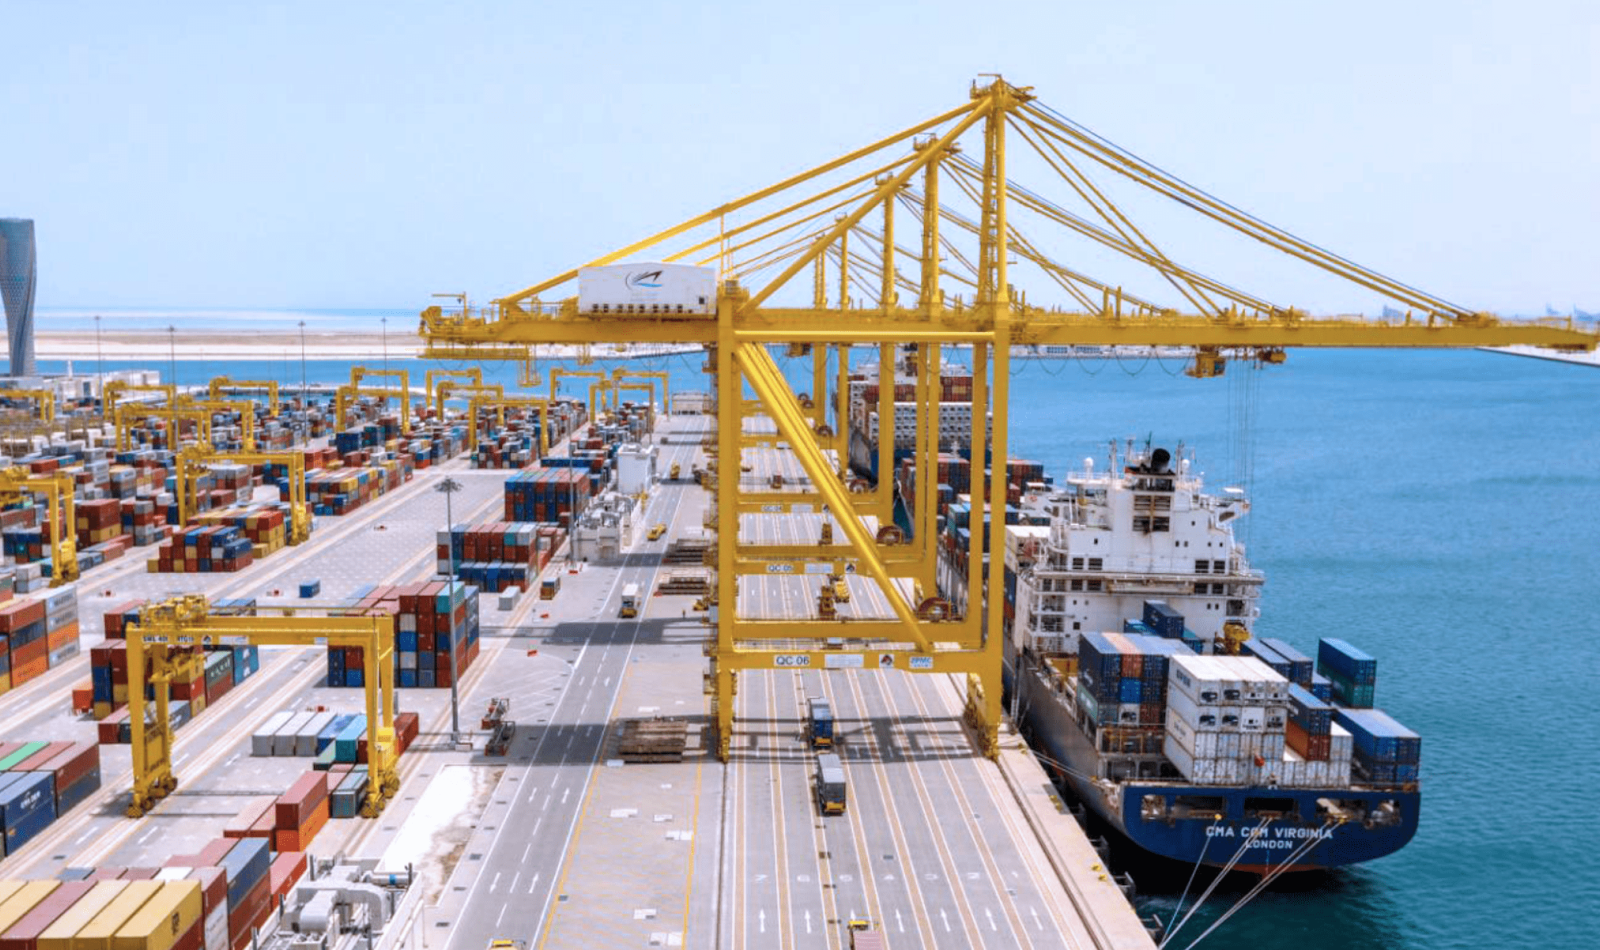 Hamad Port cargo loading, large yellow container cranes placing containers on cargo ships